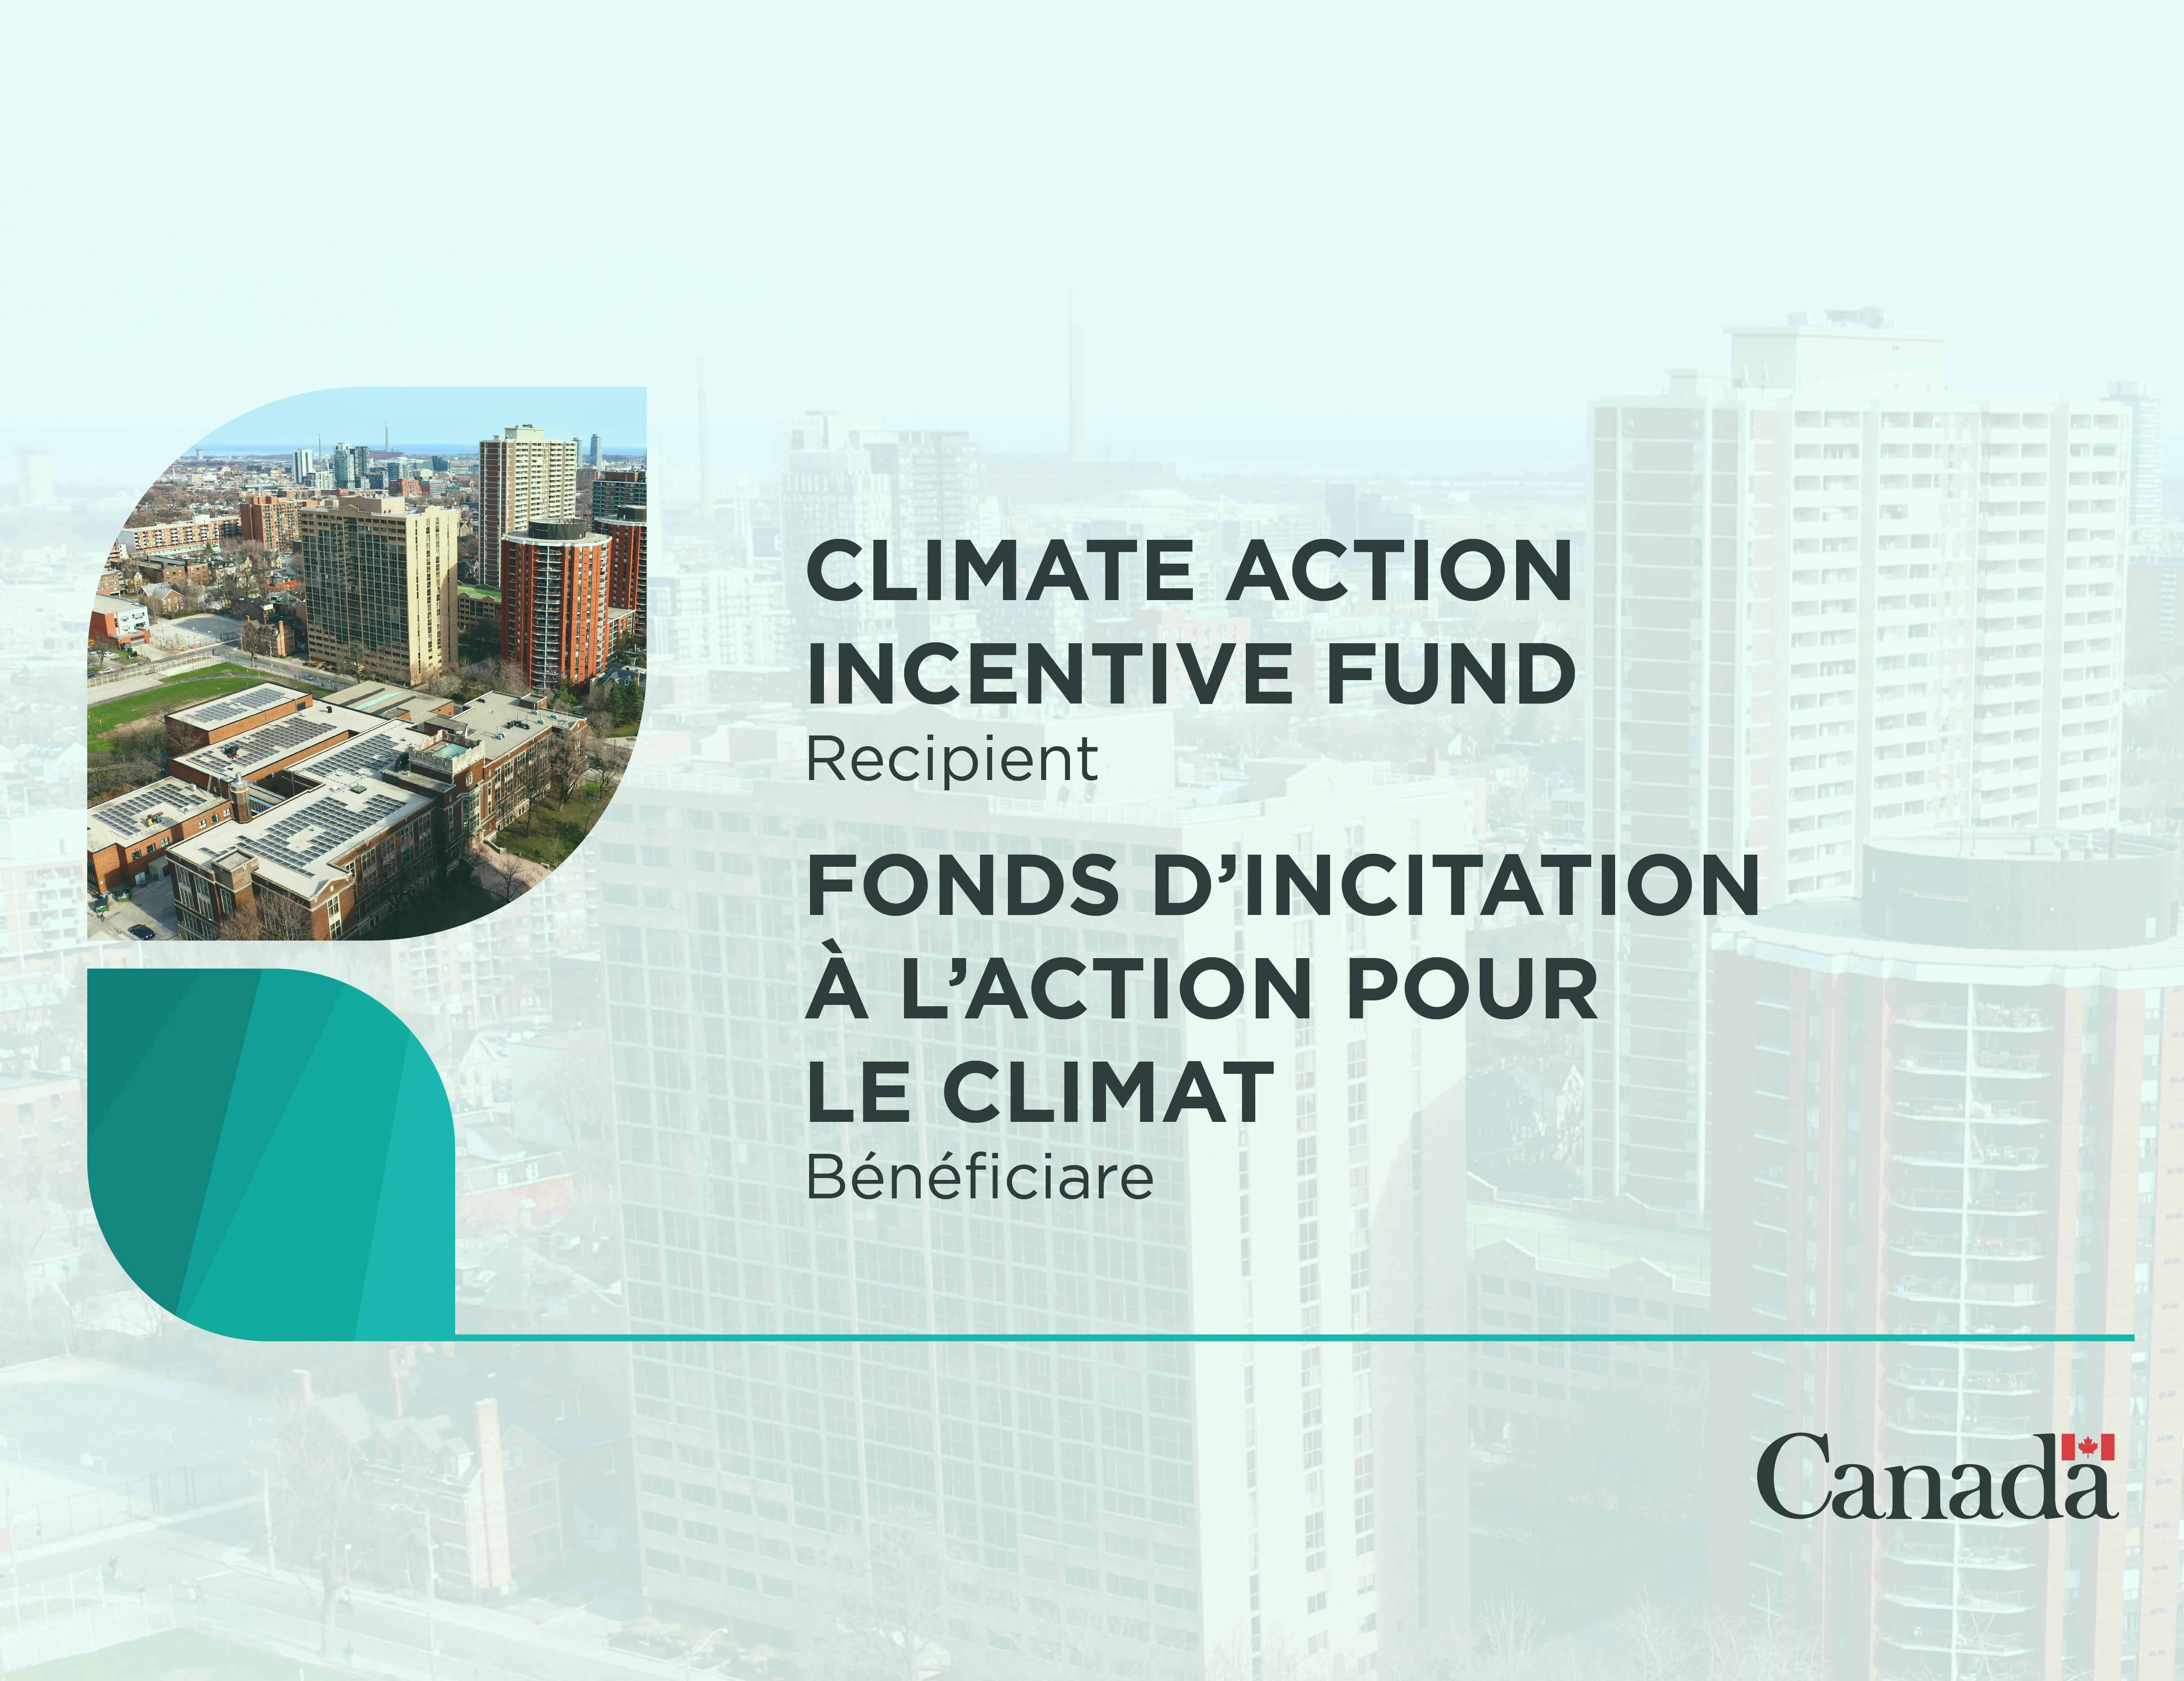 Climate Action Incentive Fund Image